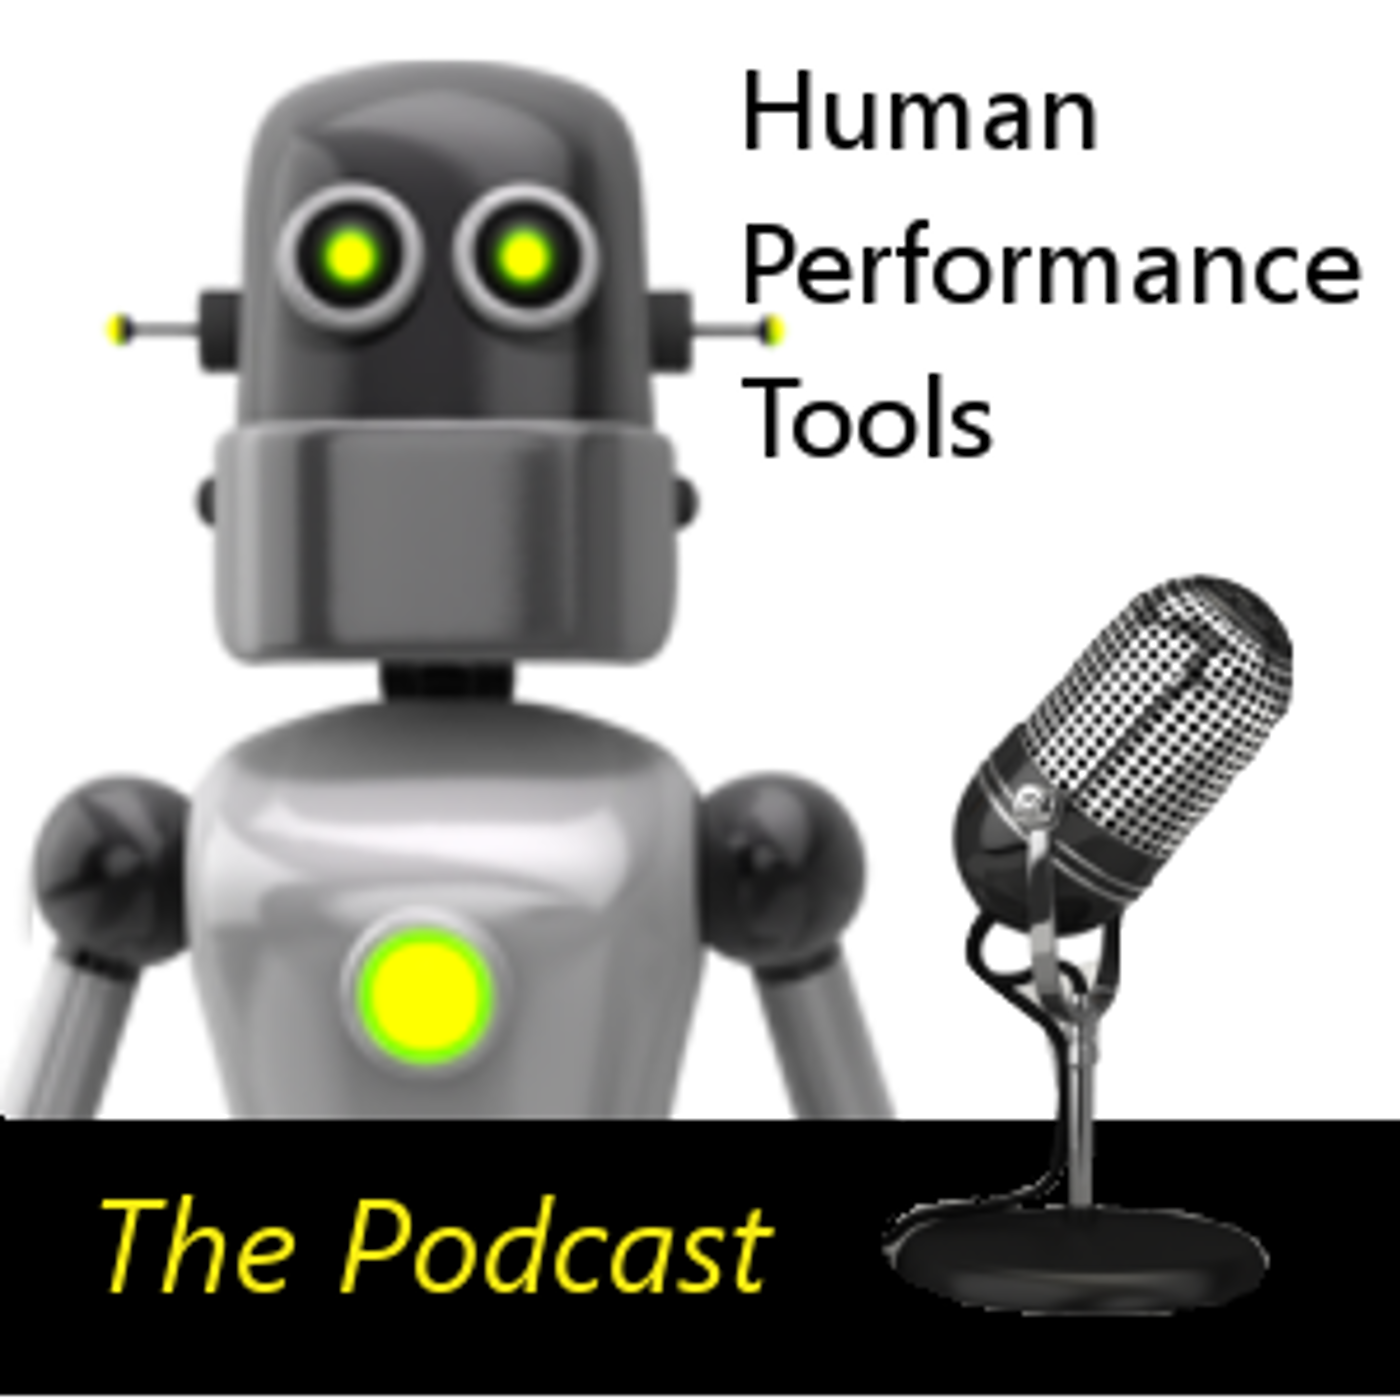 Human Performance Tools for Practitioners